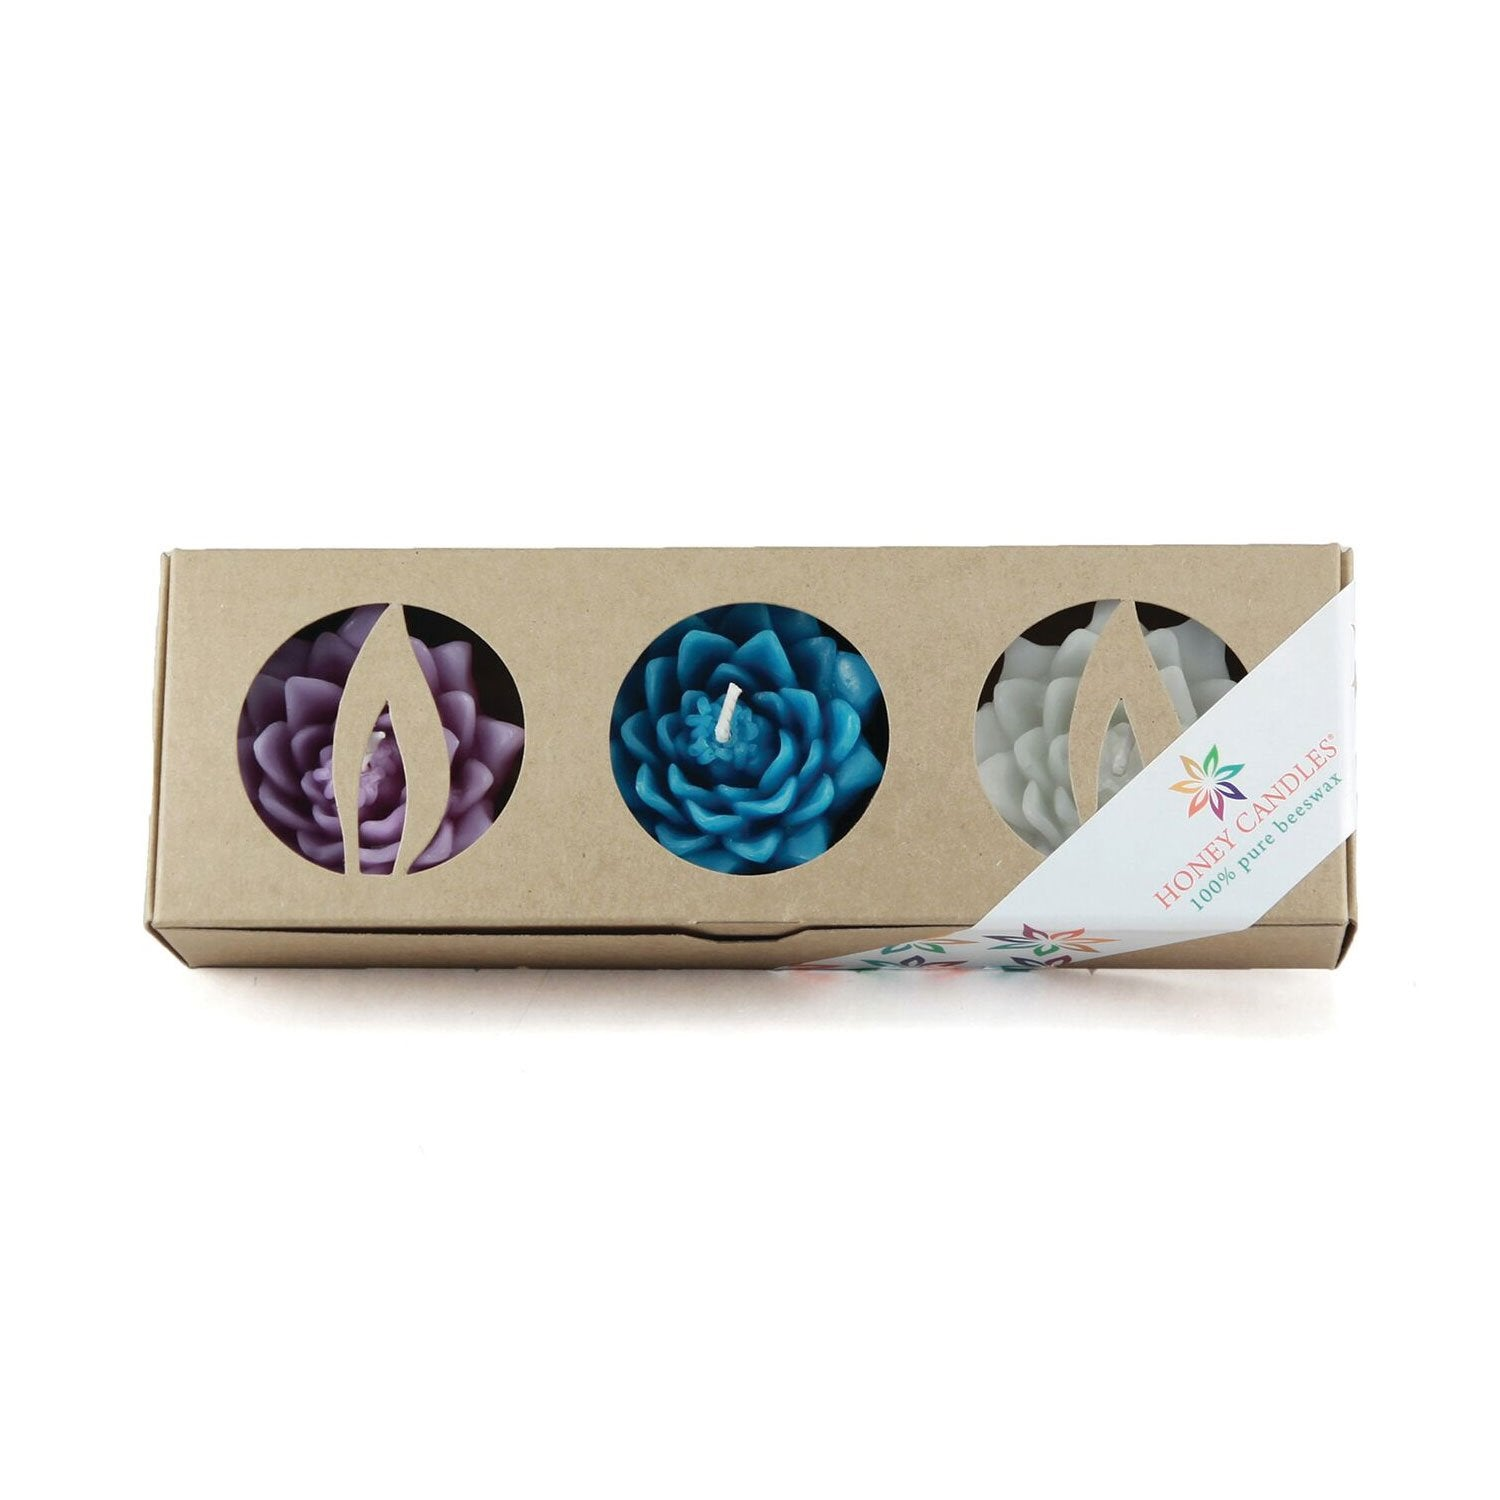 Three pack of floating lotus candle in vibrant colors